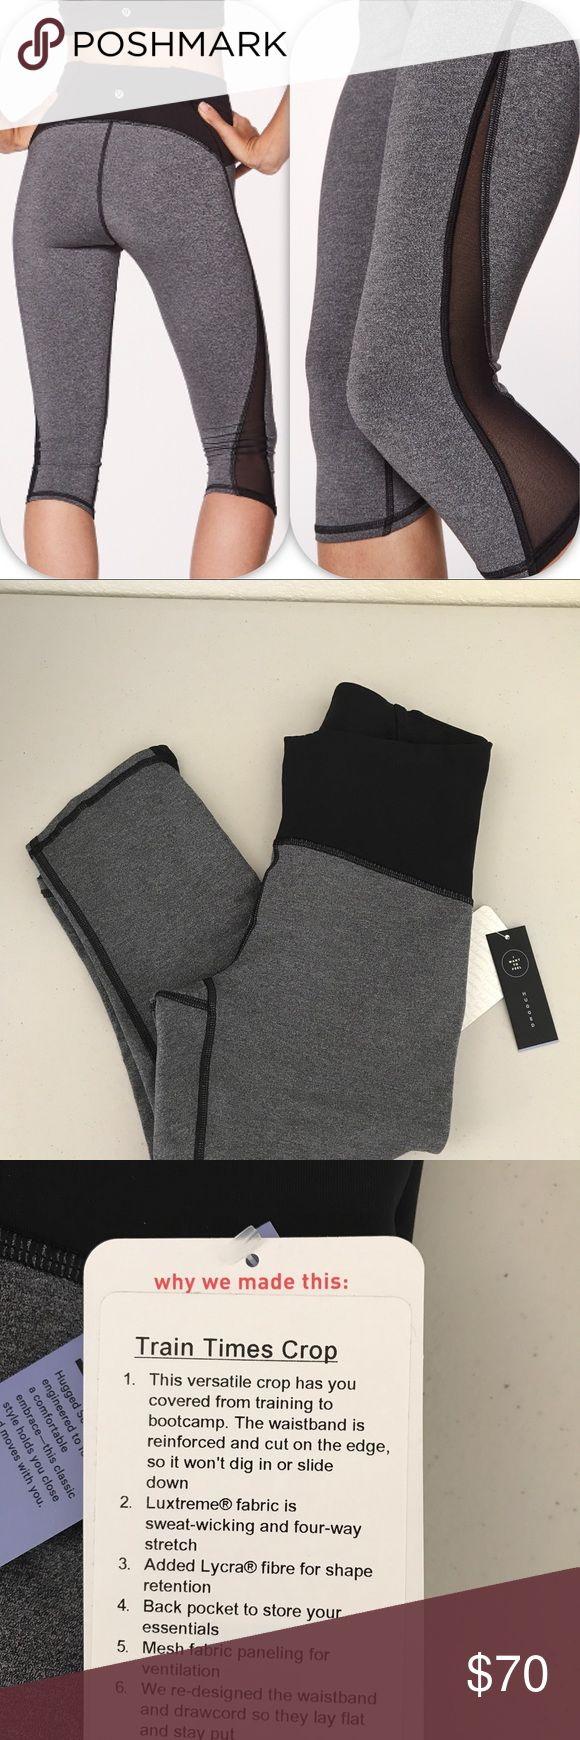 NWT HBLK LULULEMON TRAIN TIMES CROP - - Size 4 Brand: Lululemon Athletica train Times Crop        Condition: New with tag || Size 4  || HBLK heathered Black    🚩NO TRADES  🚩NO LOWBALL OFFERS  🚩NO RUDE COMMENTS  🚩NO MODELING  ☀️Please don't discuss prices in the comment box. Make a reasonable offer and I'll either counter, accept or decline.   I will try to respond to all inquiries in a timely manner. Please check out the rest of my closet, I have various brands. lululemon athletica Pants…